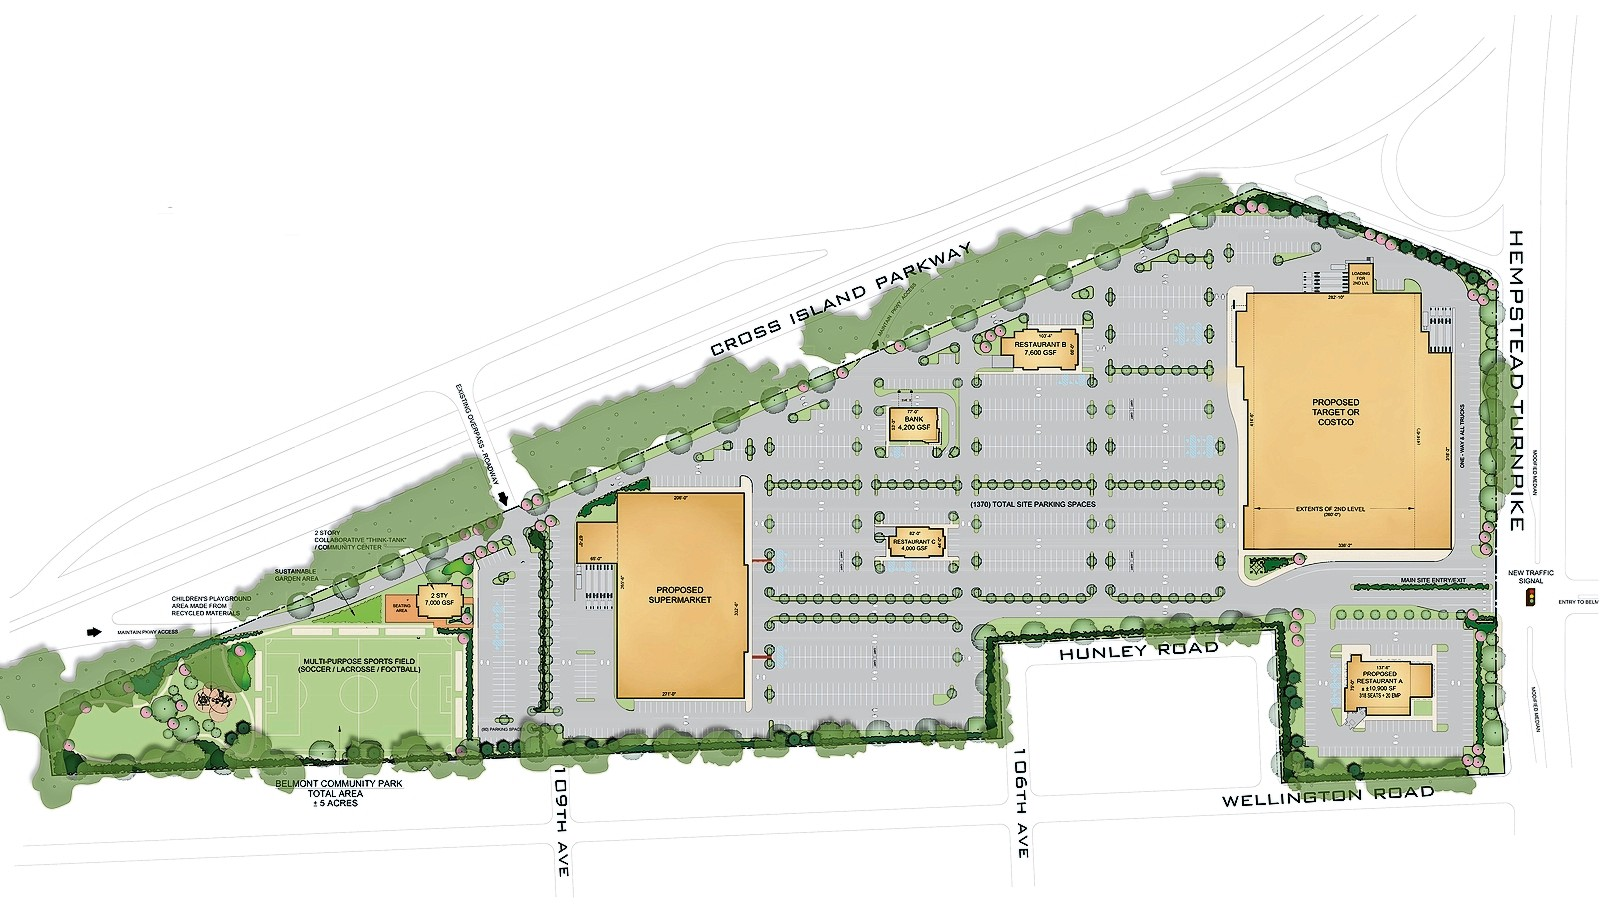 Development company Engel Burman presented its plan for the south lot of Belmont Park to the community on June 15.